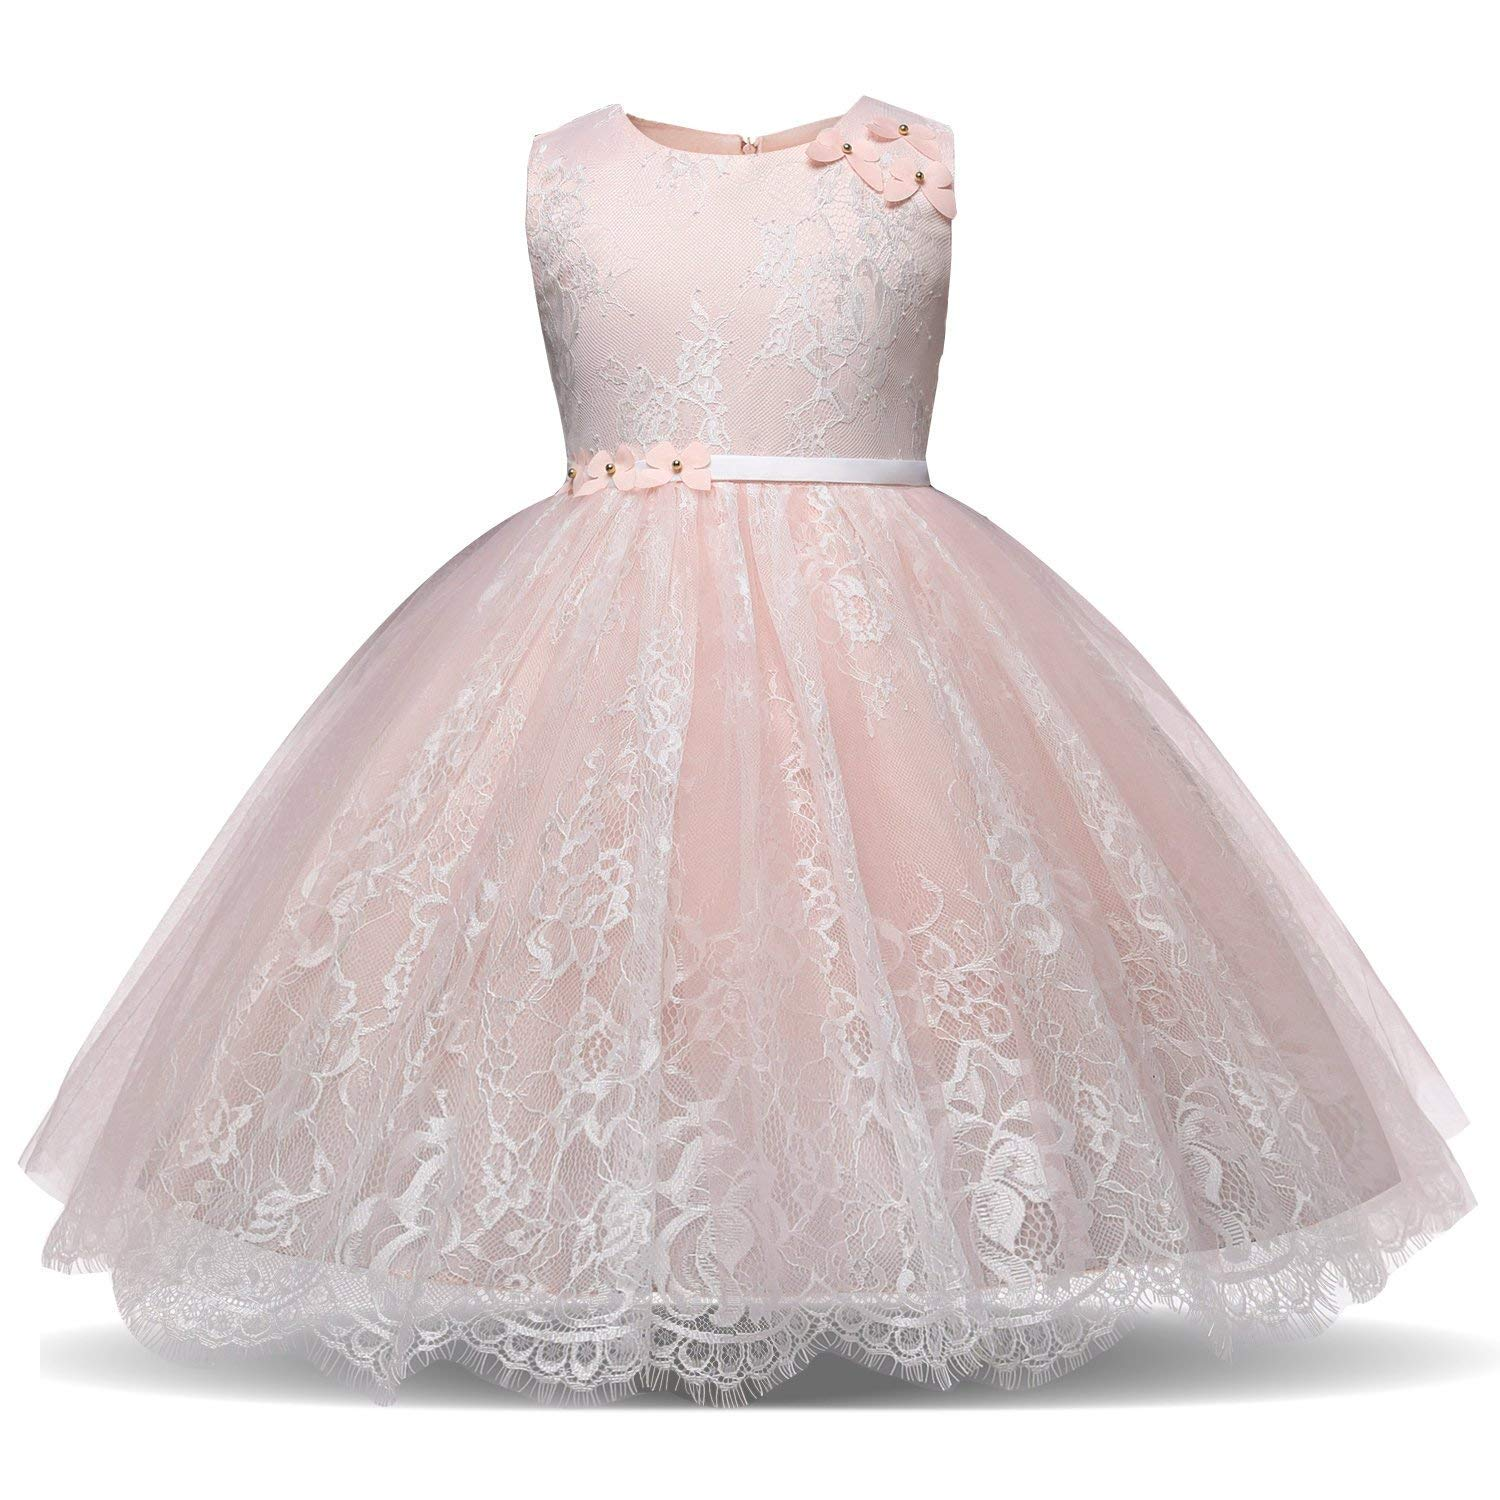 TTYAOVO Lace Chiffon Embroidered Flower Girls Wedding Bridesmaid Pageant Dresses Size 3-4 Years Pink